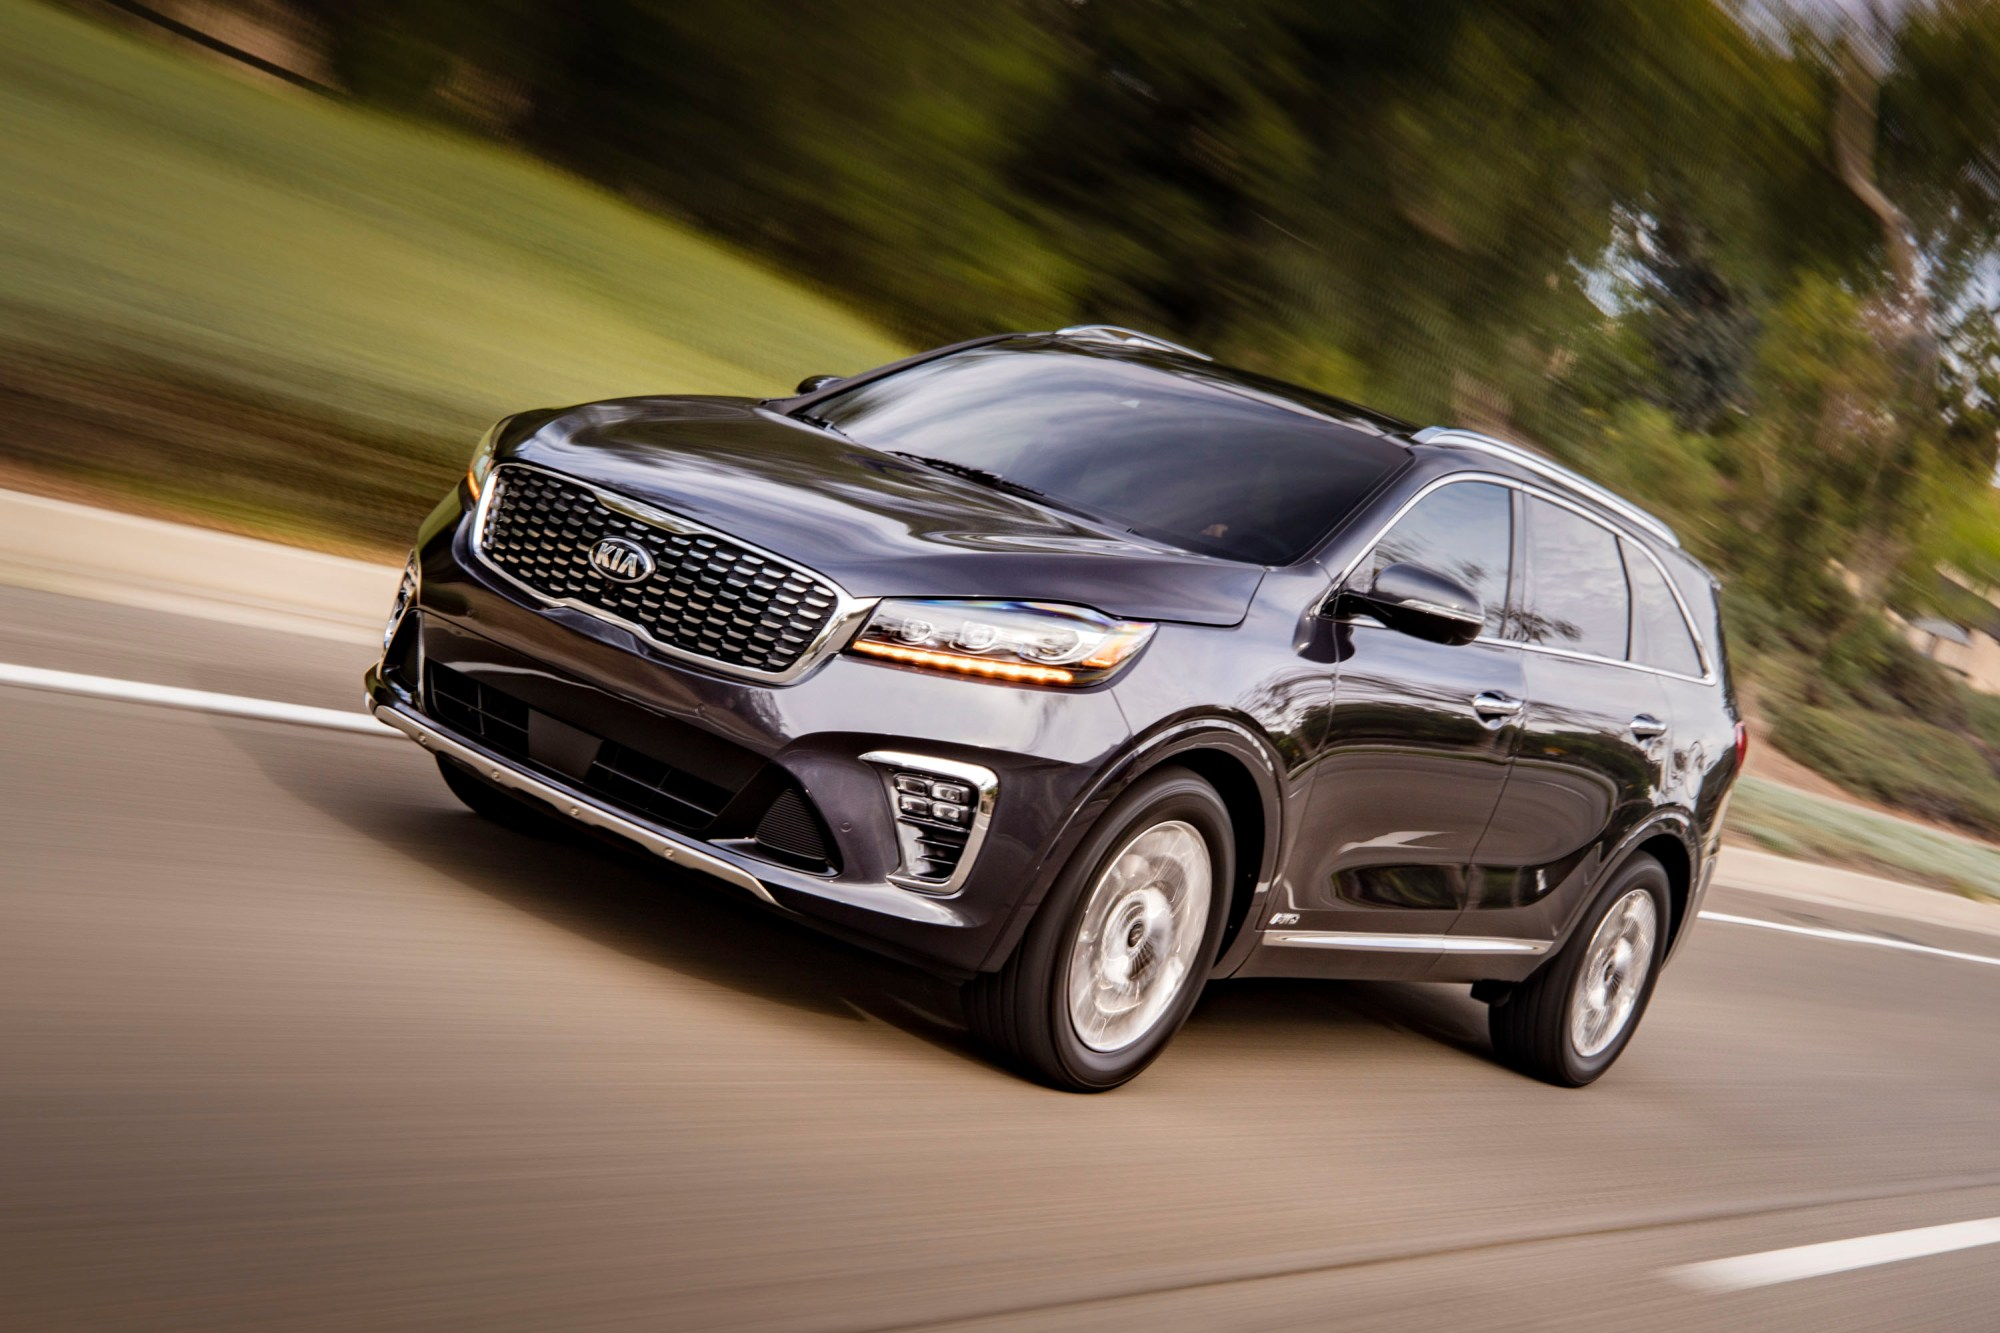 hight resolution of updated kia sorento unveiled in l a with new features diesel engine confirmed